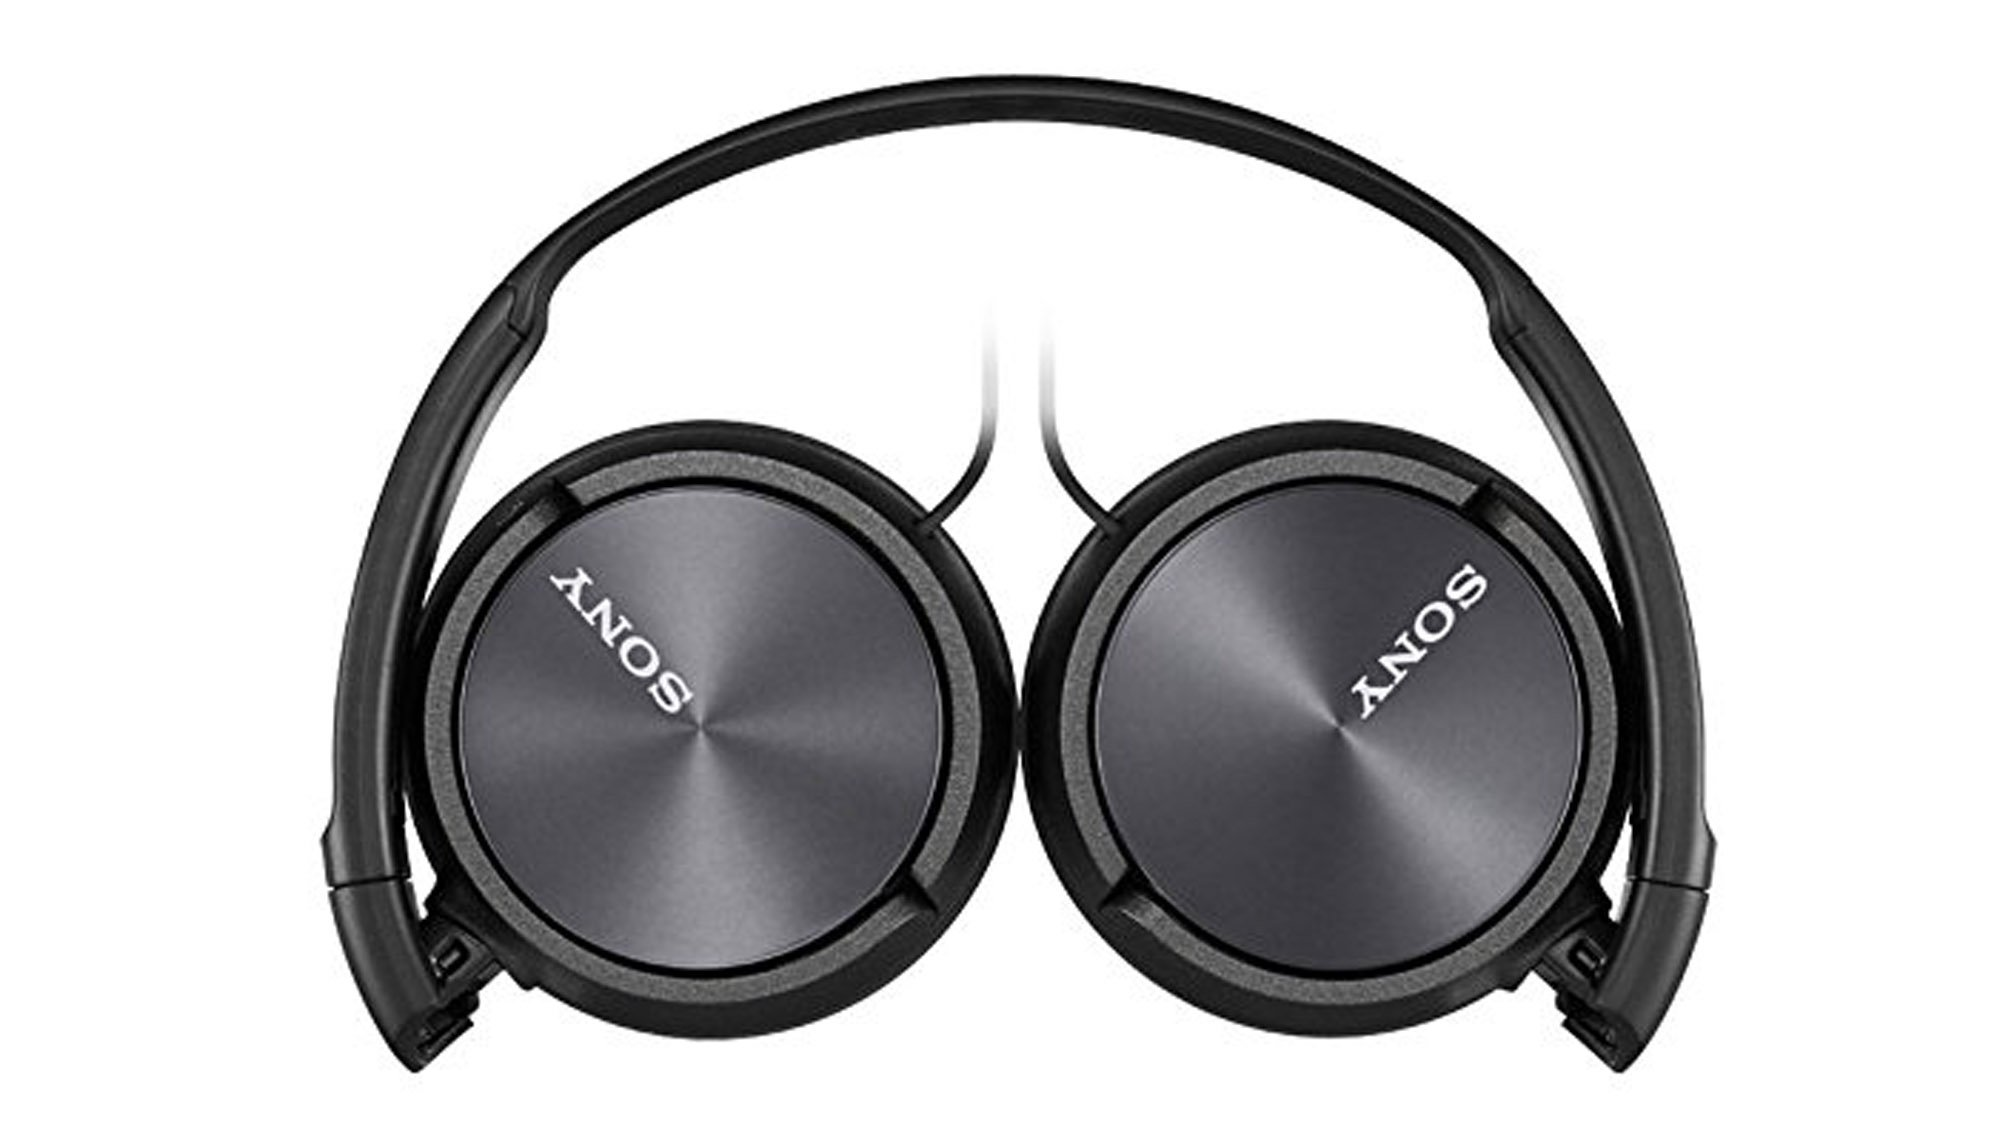 3f8958b96720c5 If you're looking for a pair of headphones to wear on the commute, then  you'll want something that's portable and not too pricey. The Sony  MDR-ZX310 fit the ...